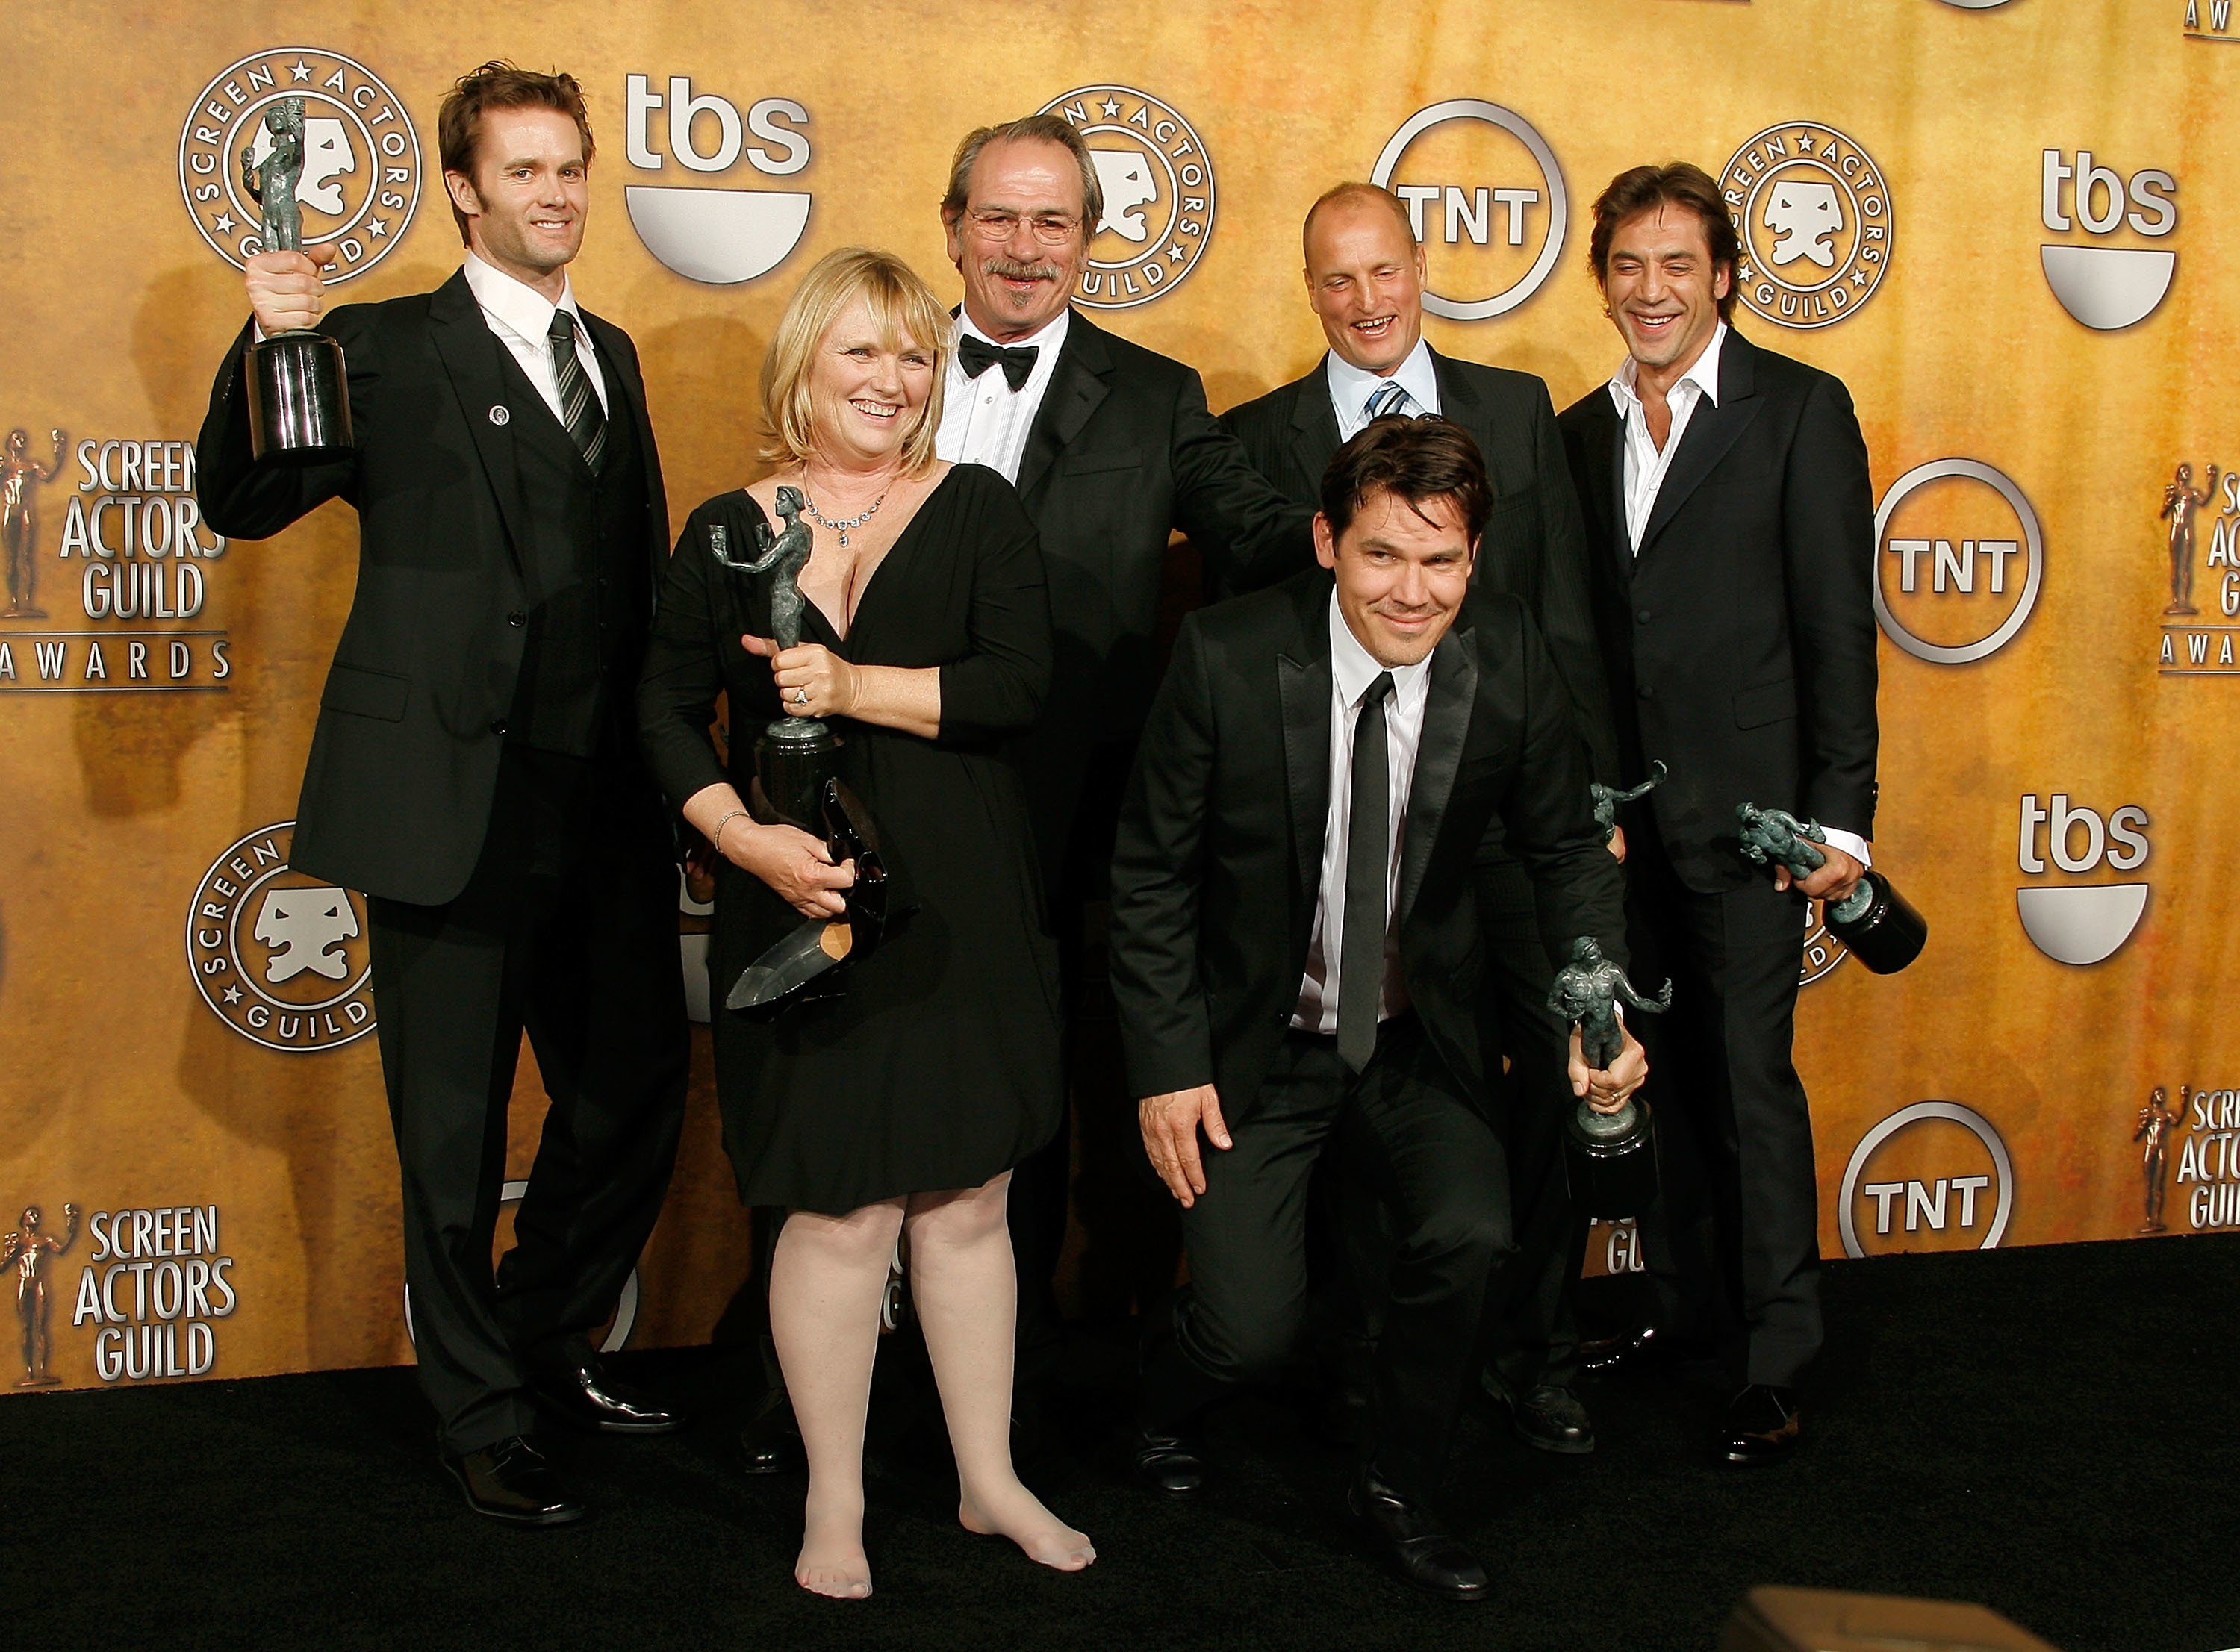 Garret Dillahunt, Tess Harper, Tommy Lee Jones, Josh Brolin, Woody Harrelson and Javier Bardem attend the 14th Annual SAG Awards at the Shrine Auditorium in Los Angeles on Jan. 27, 2008.